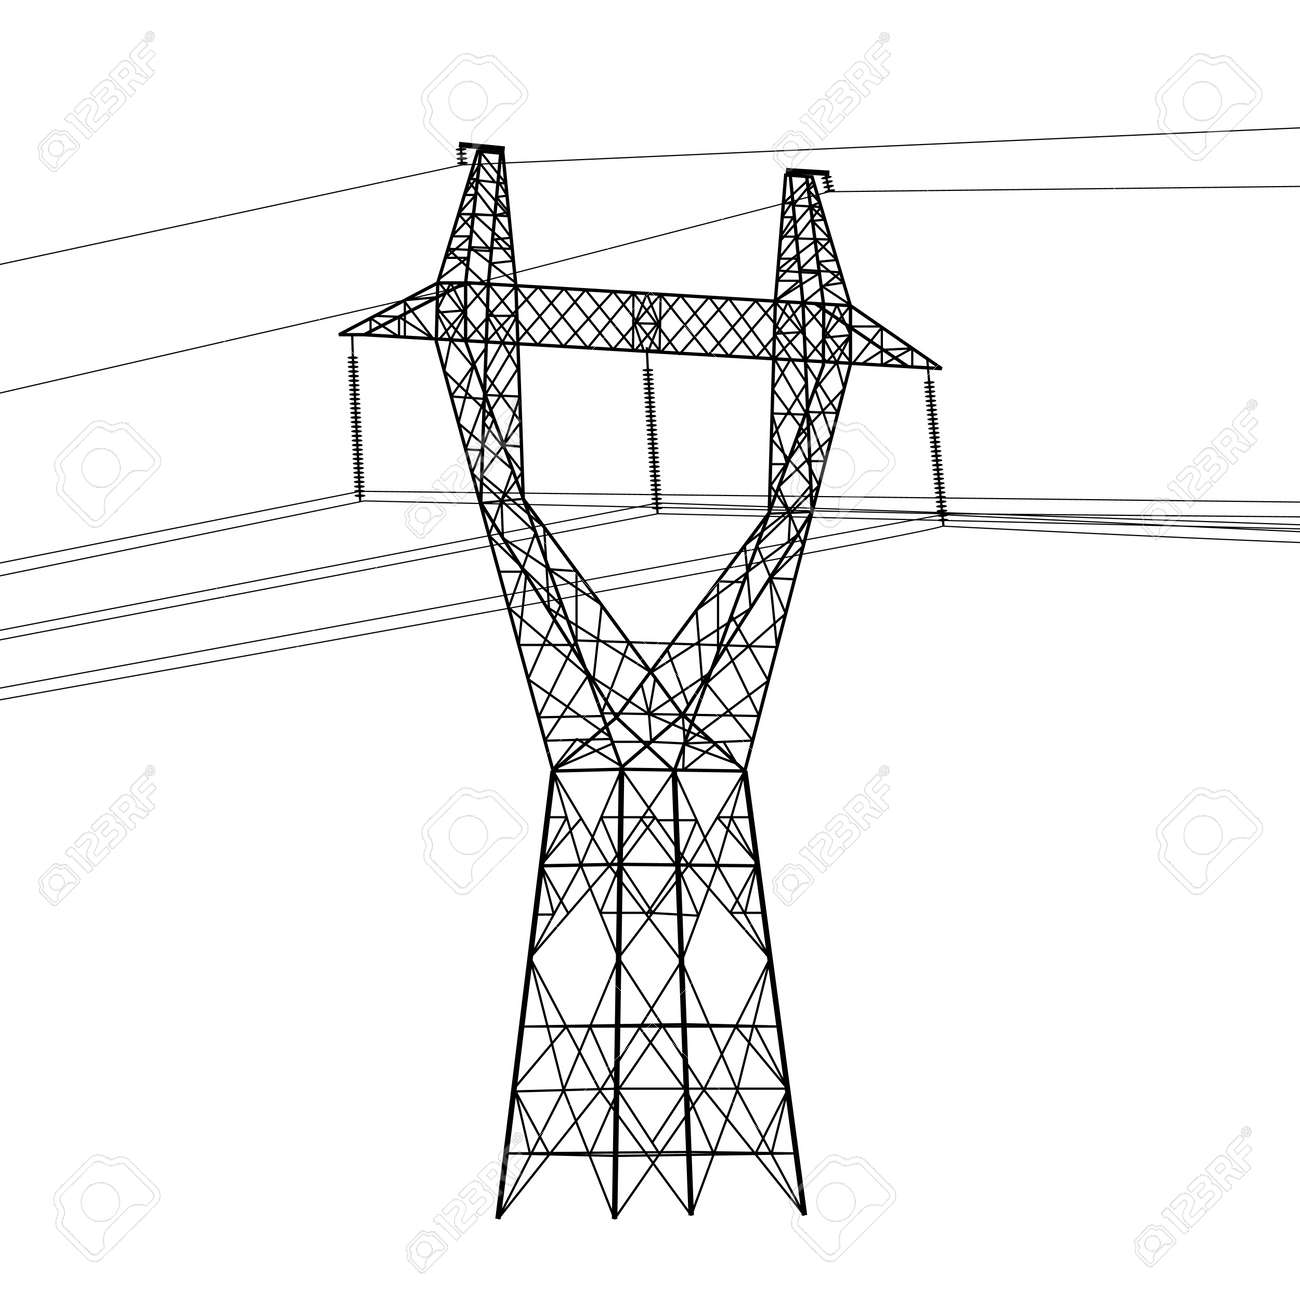 Silhouette of high voltage power lines. Vector  illustration. Stock Vector - 16423438